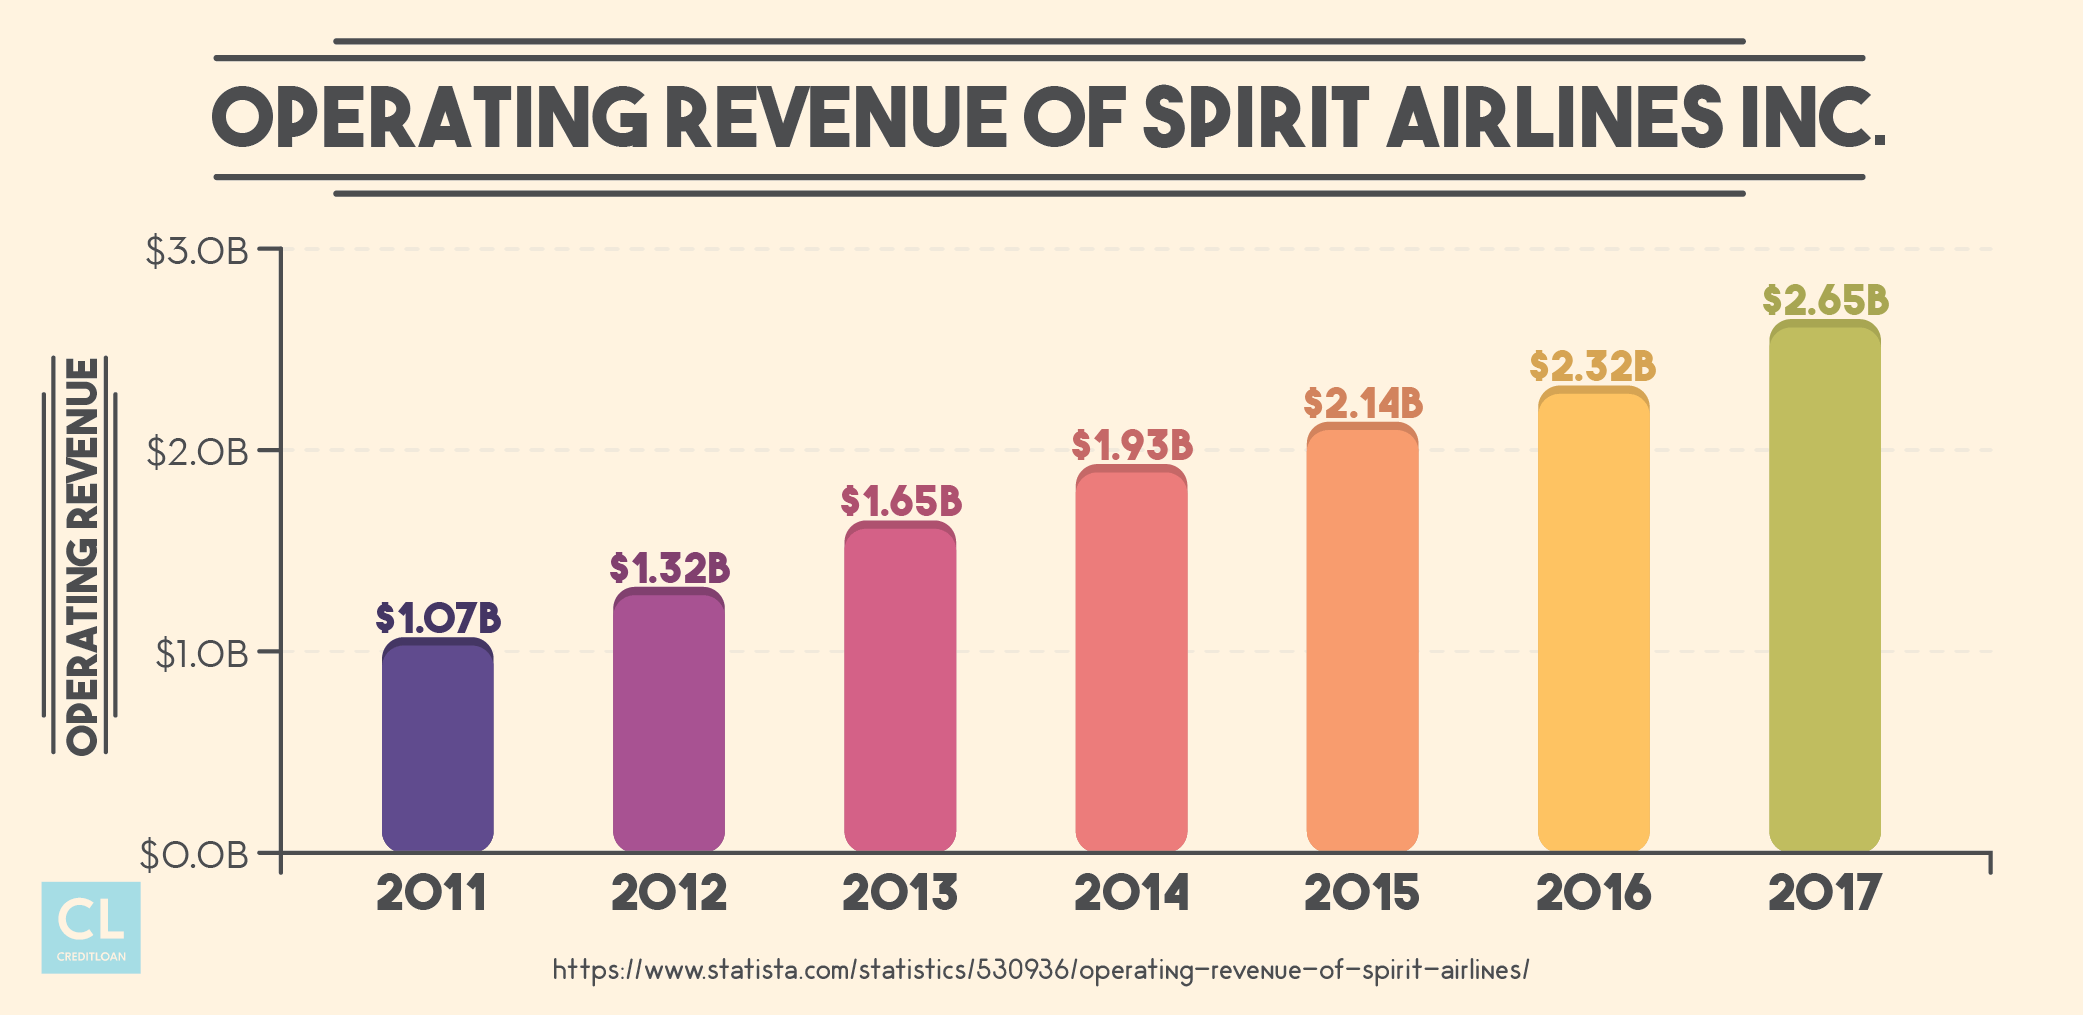 Operating Revenue of Spirit Airlines Inc. from 2011-2017